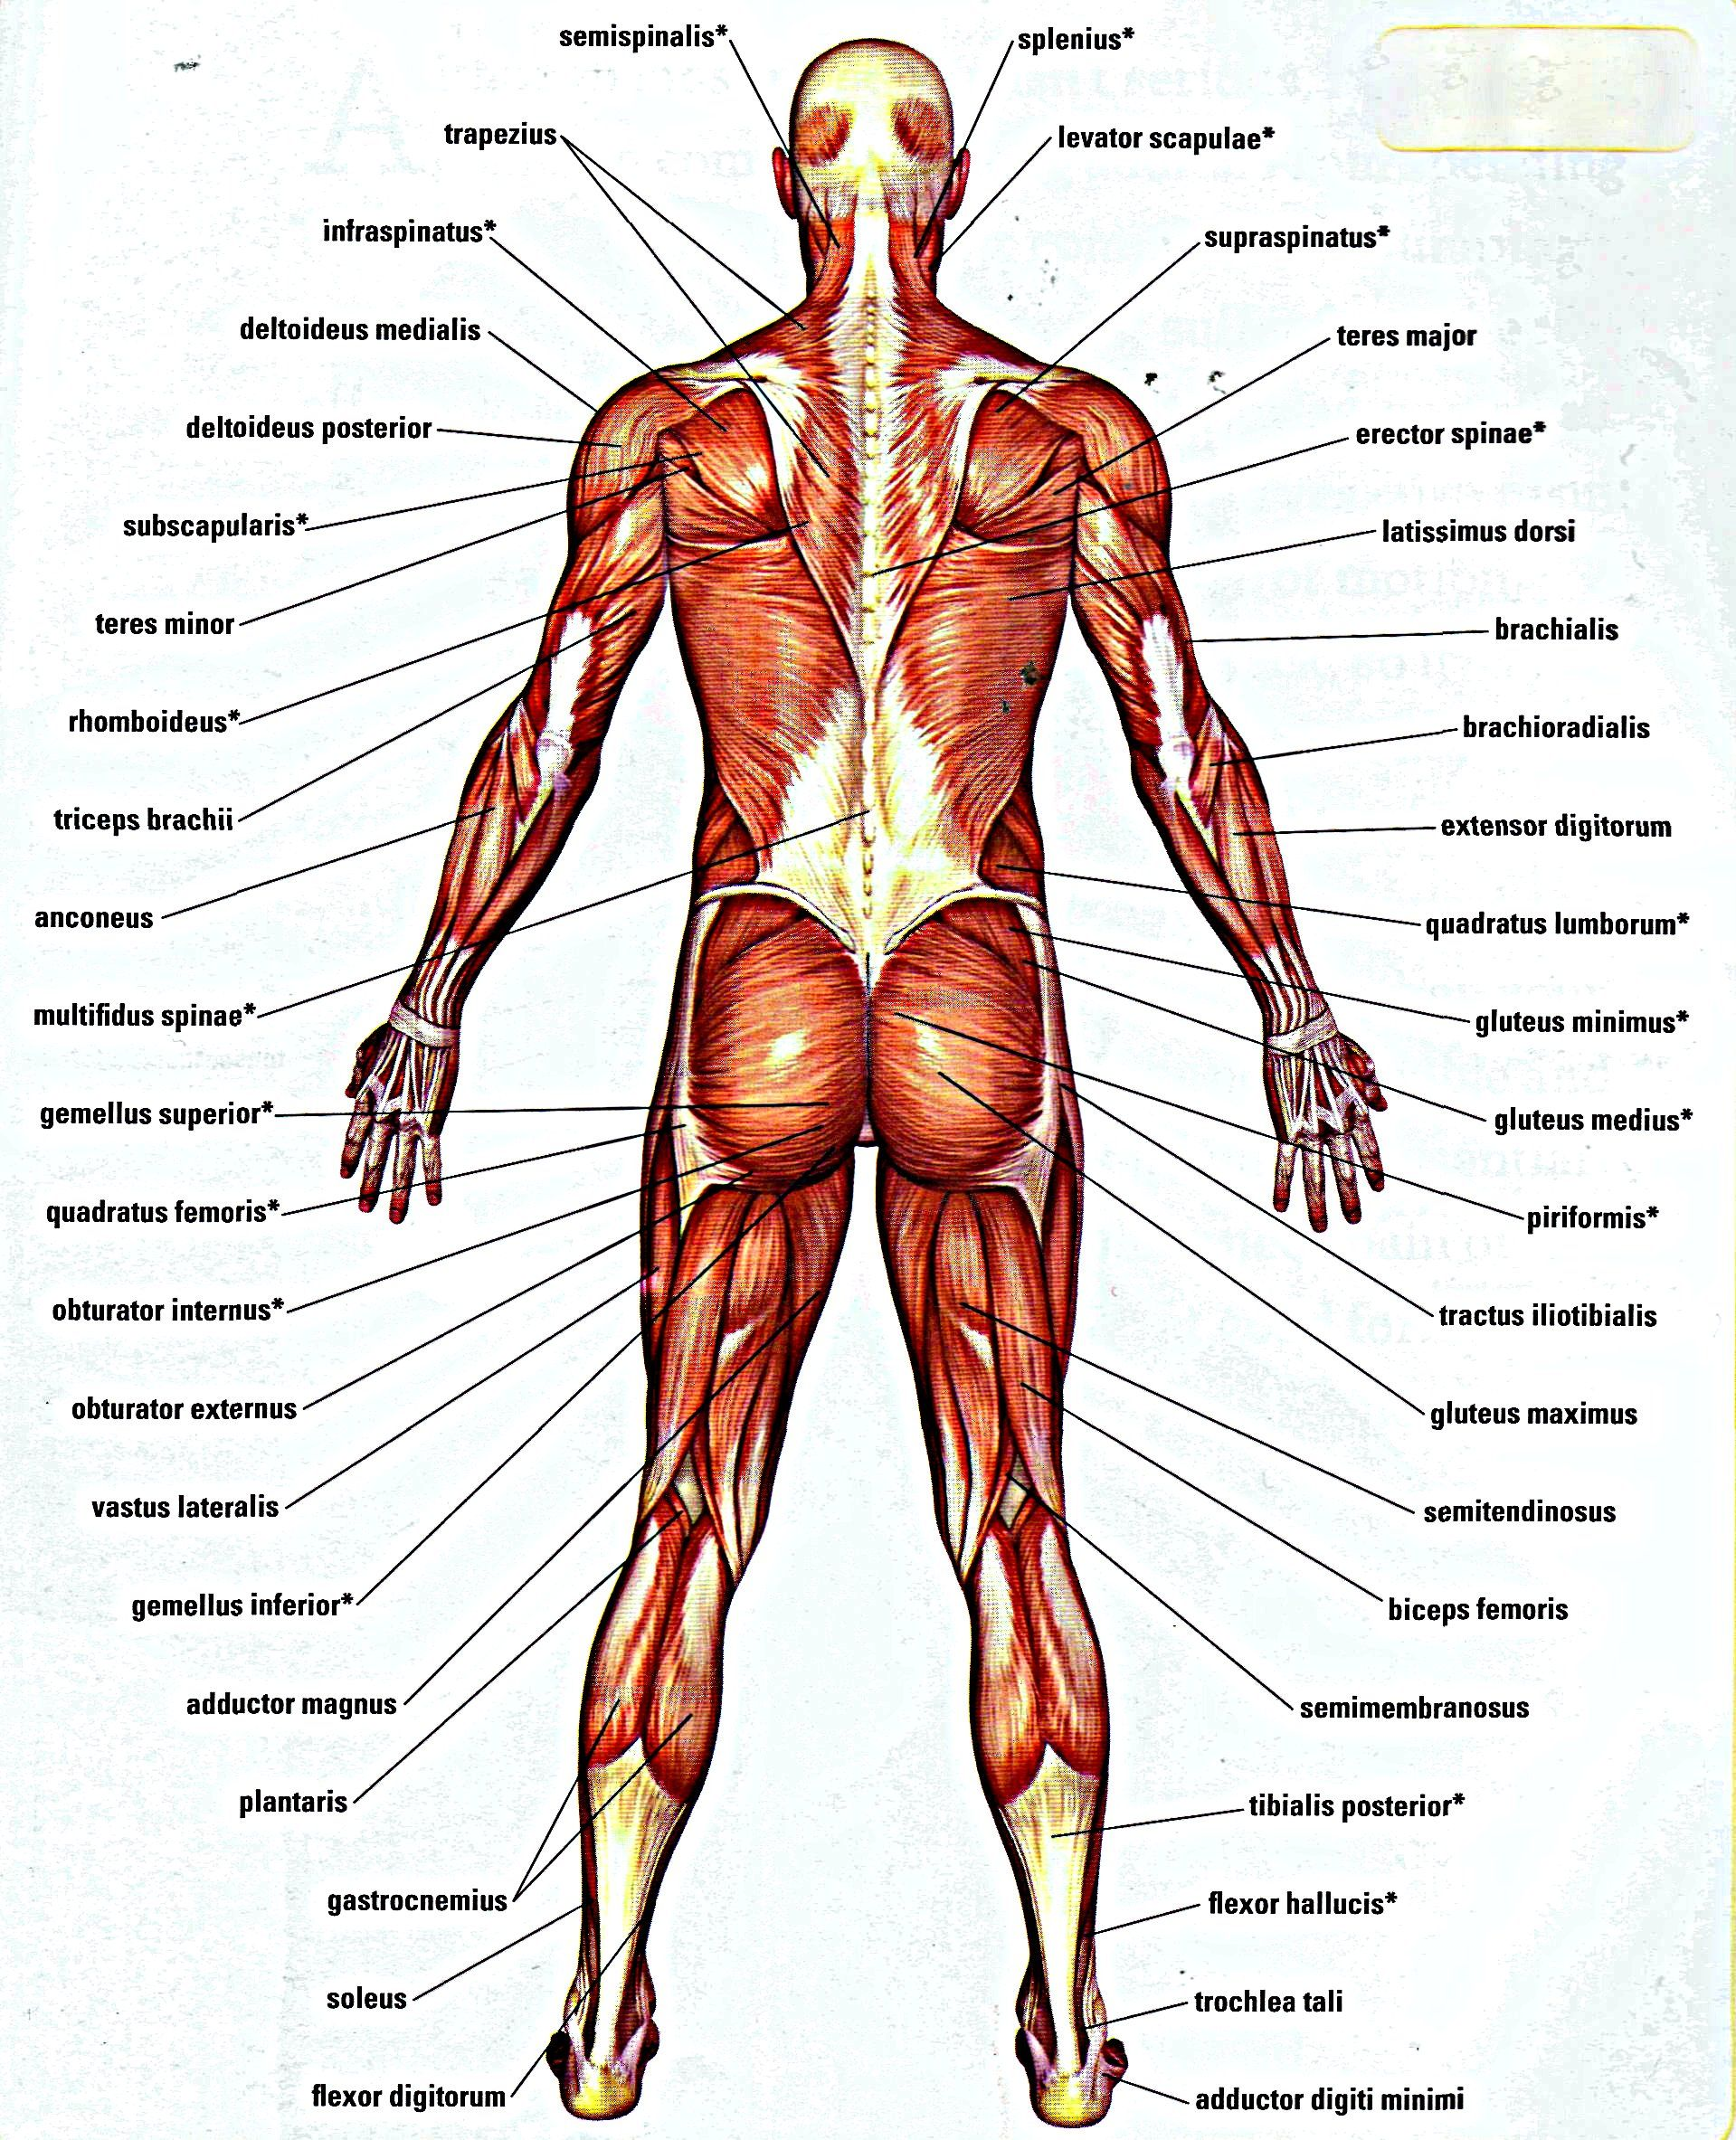 Pin de Robert Brown en Anatomy Reference | Pinterest | Cuerpo humano ...